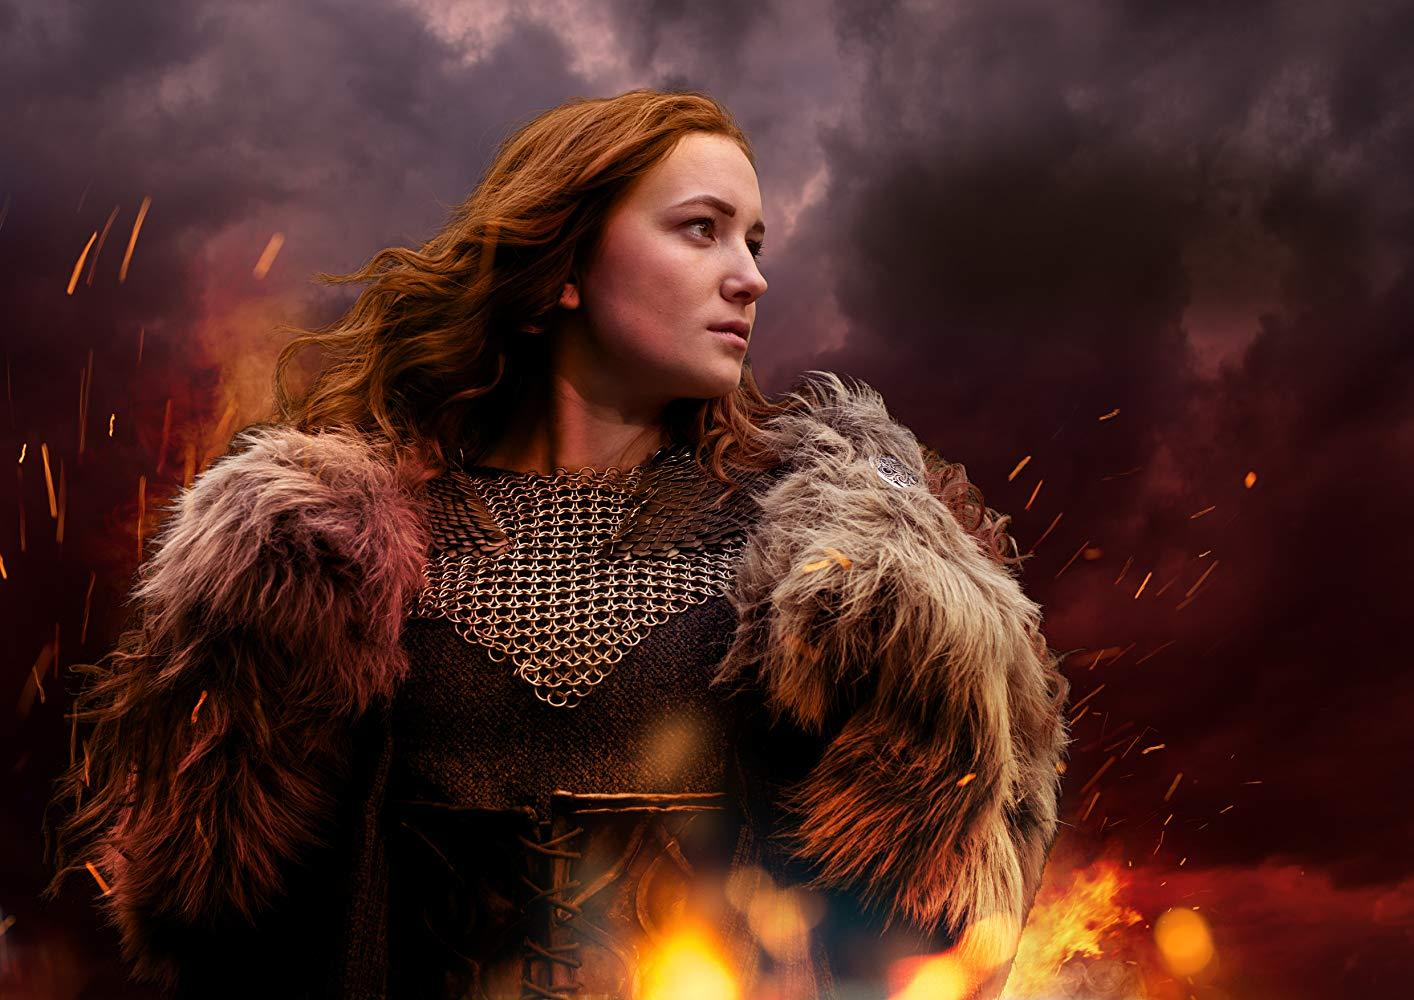 مشاهدة فيلم Boudica: Rise of the Warrior Queen (2019) مترجم HD اون لاين